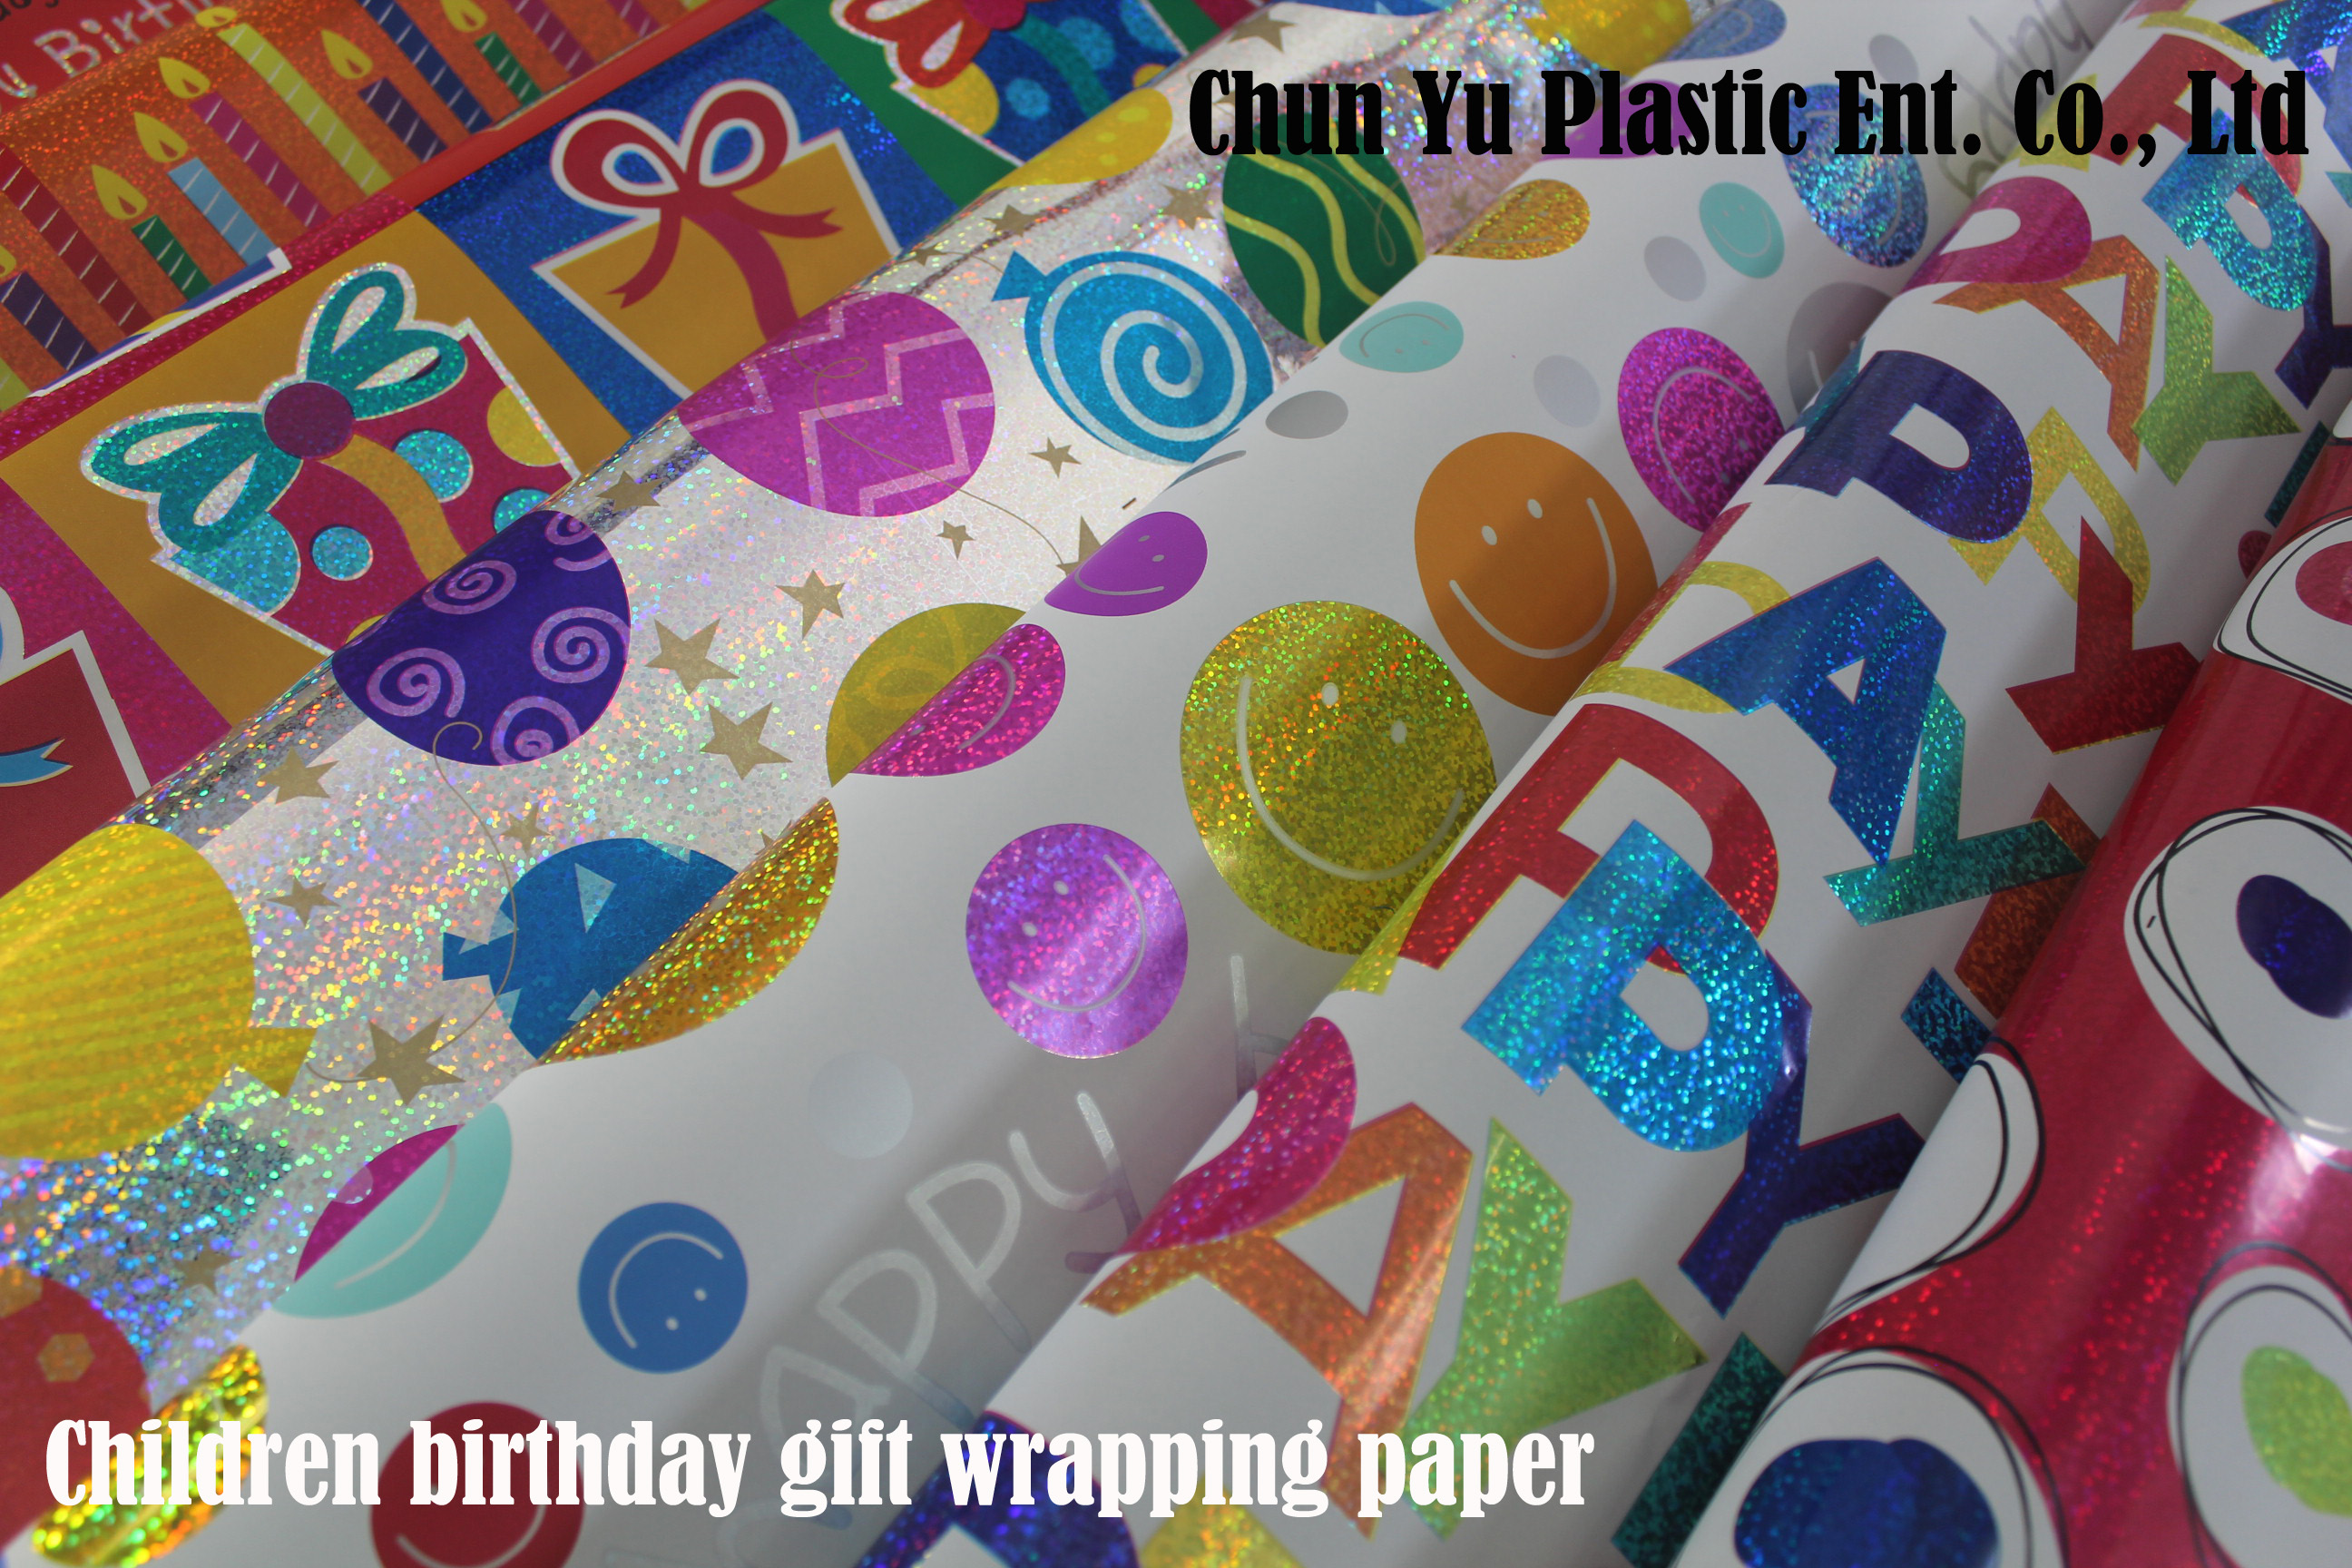 Gift Wrapping Paper Printed With Kid Designs For Birthday And Celebration Parties We Have Girls Boys